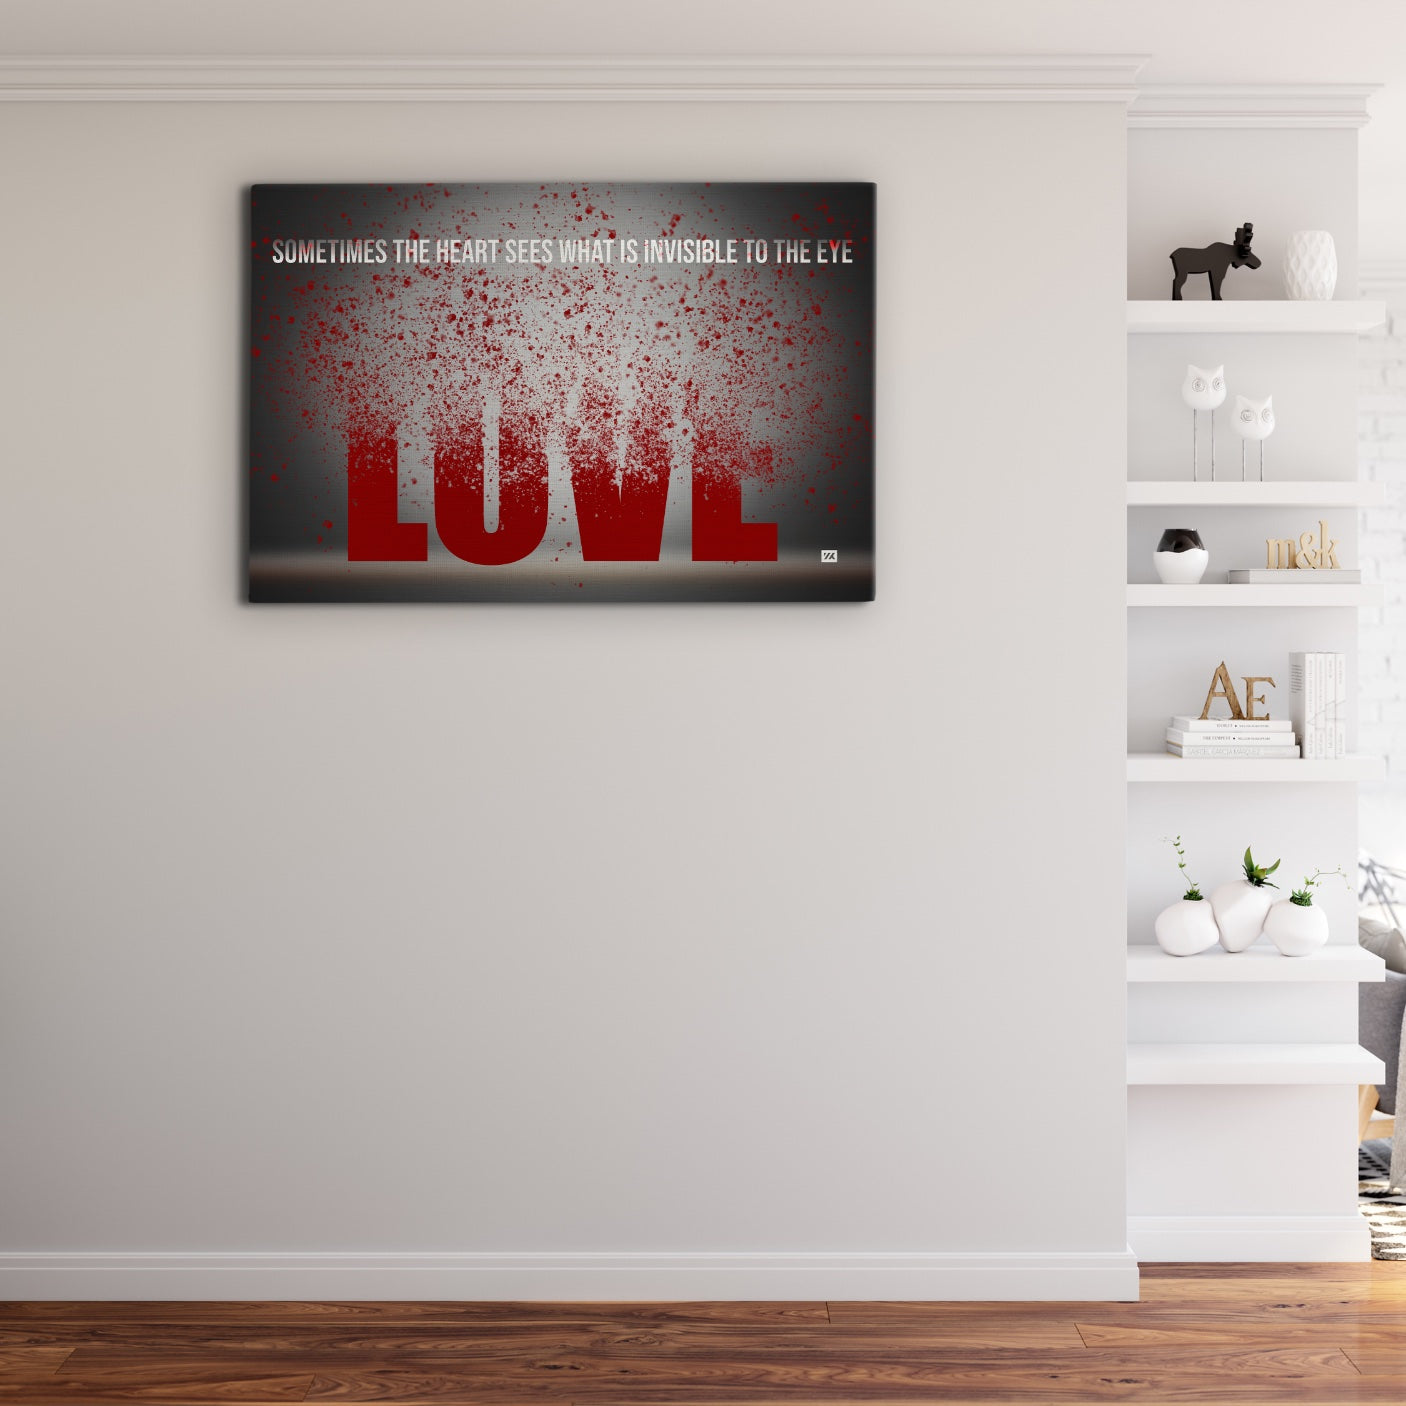 The Heart Sees What Is Invisble To The Eye - Wallkraft Designs